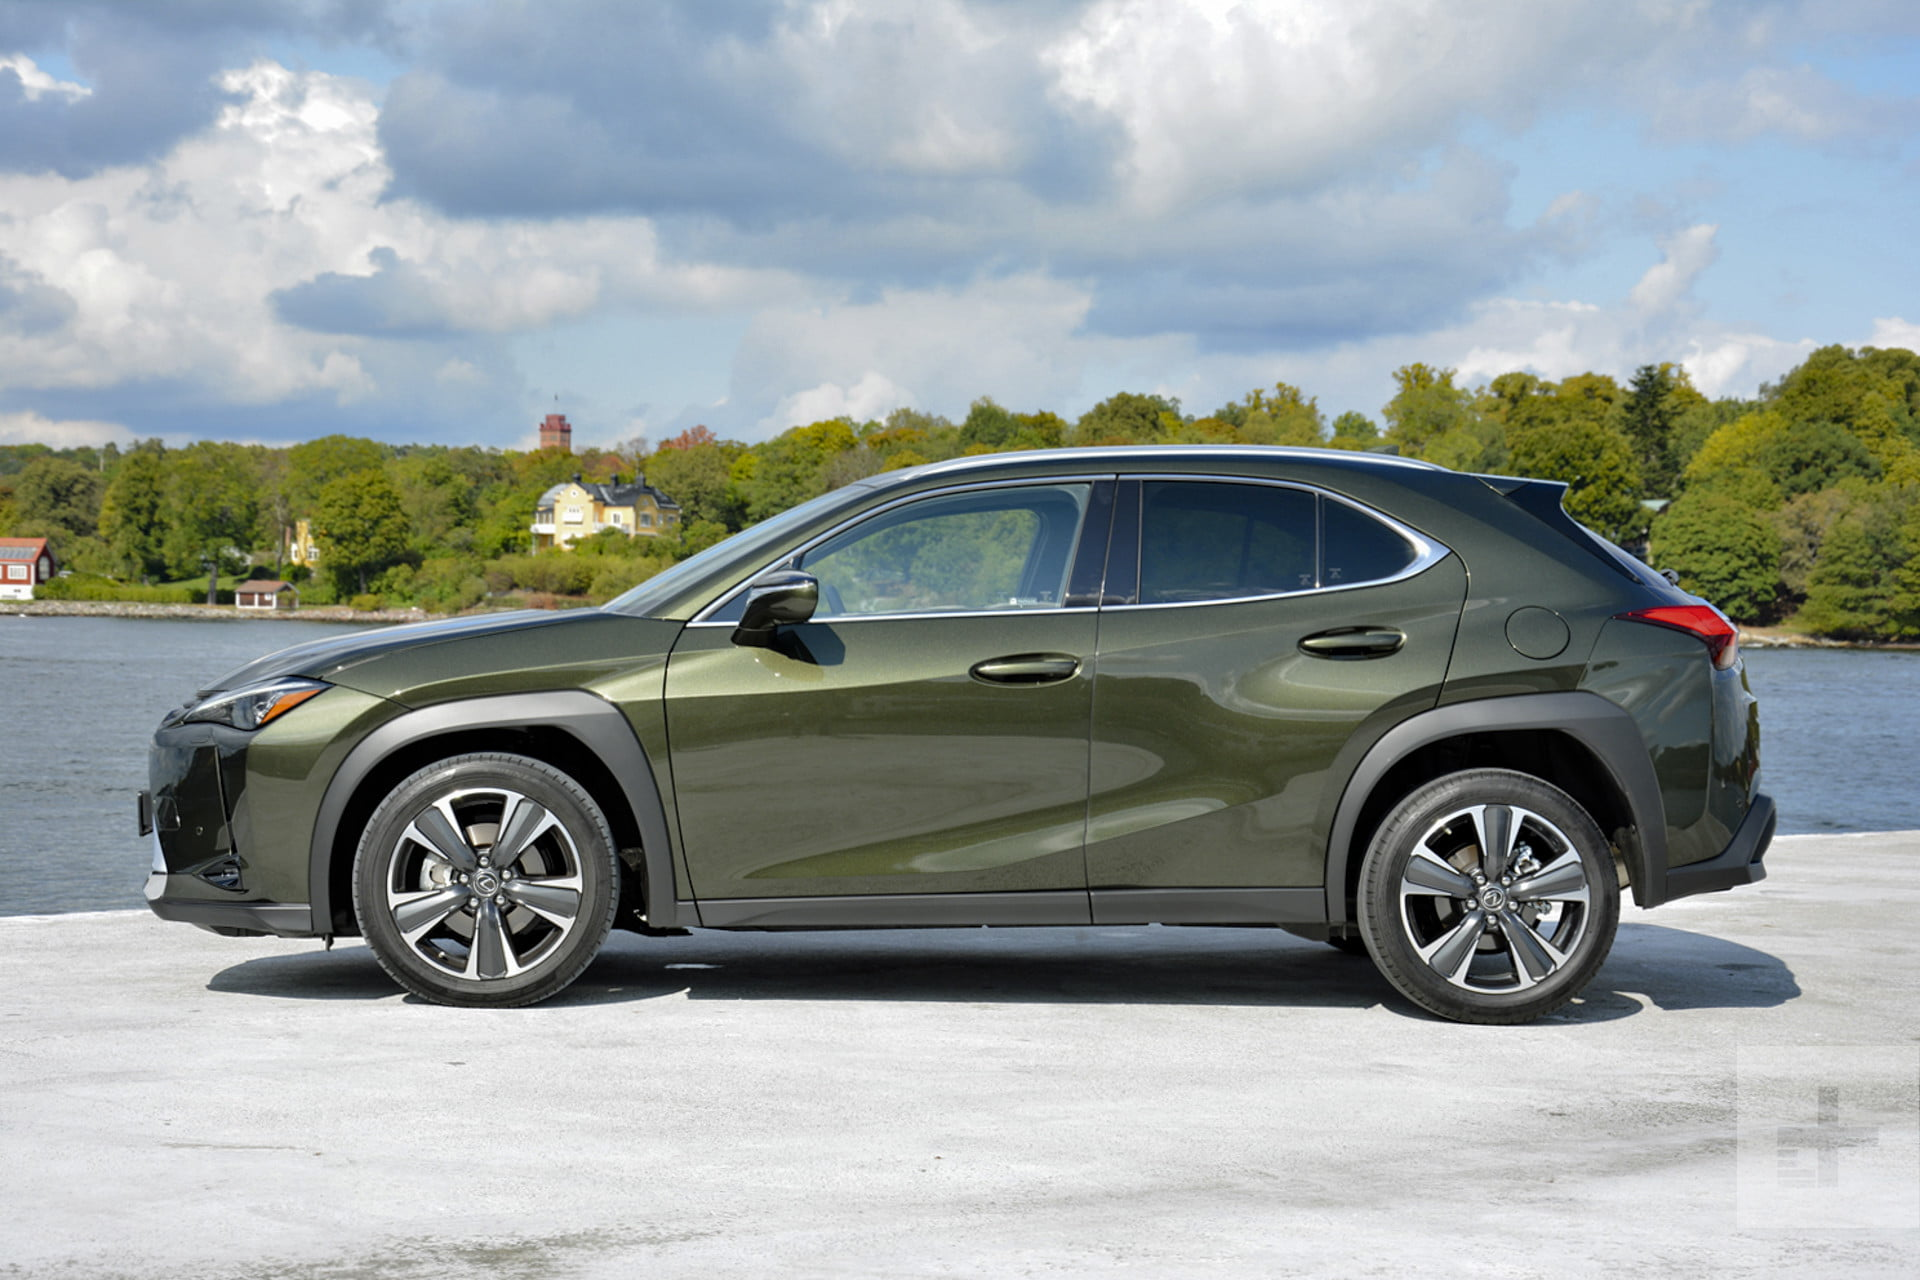 2019 lexus ux first drive review  driving impressions